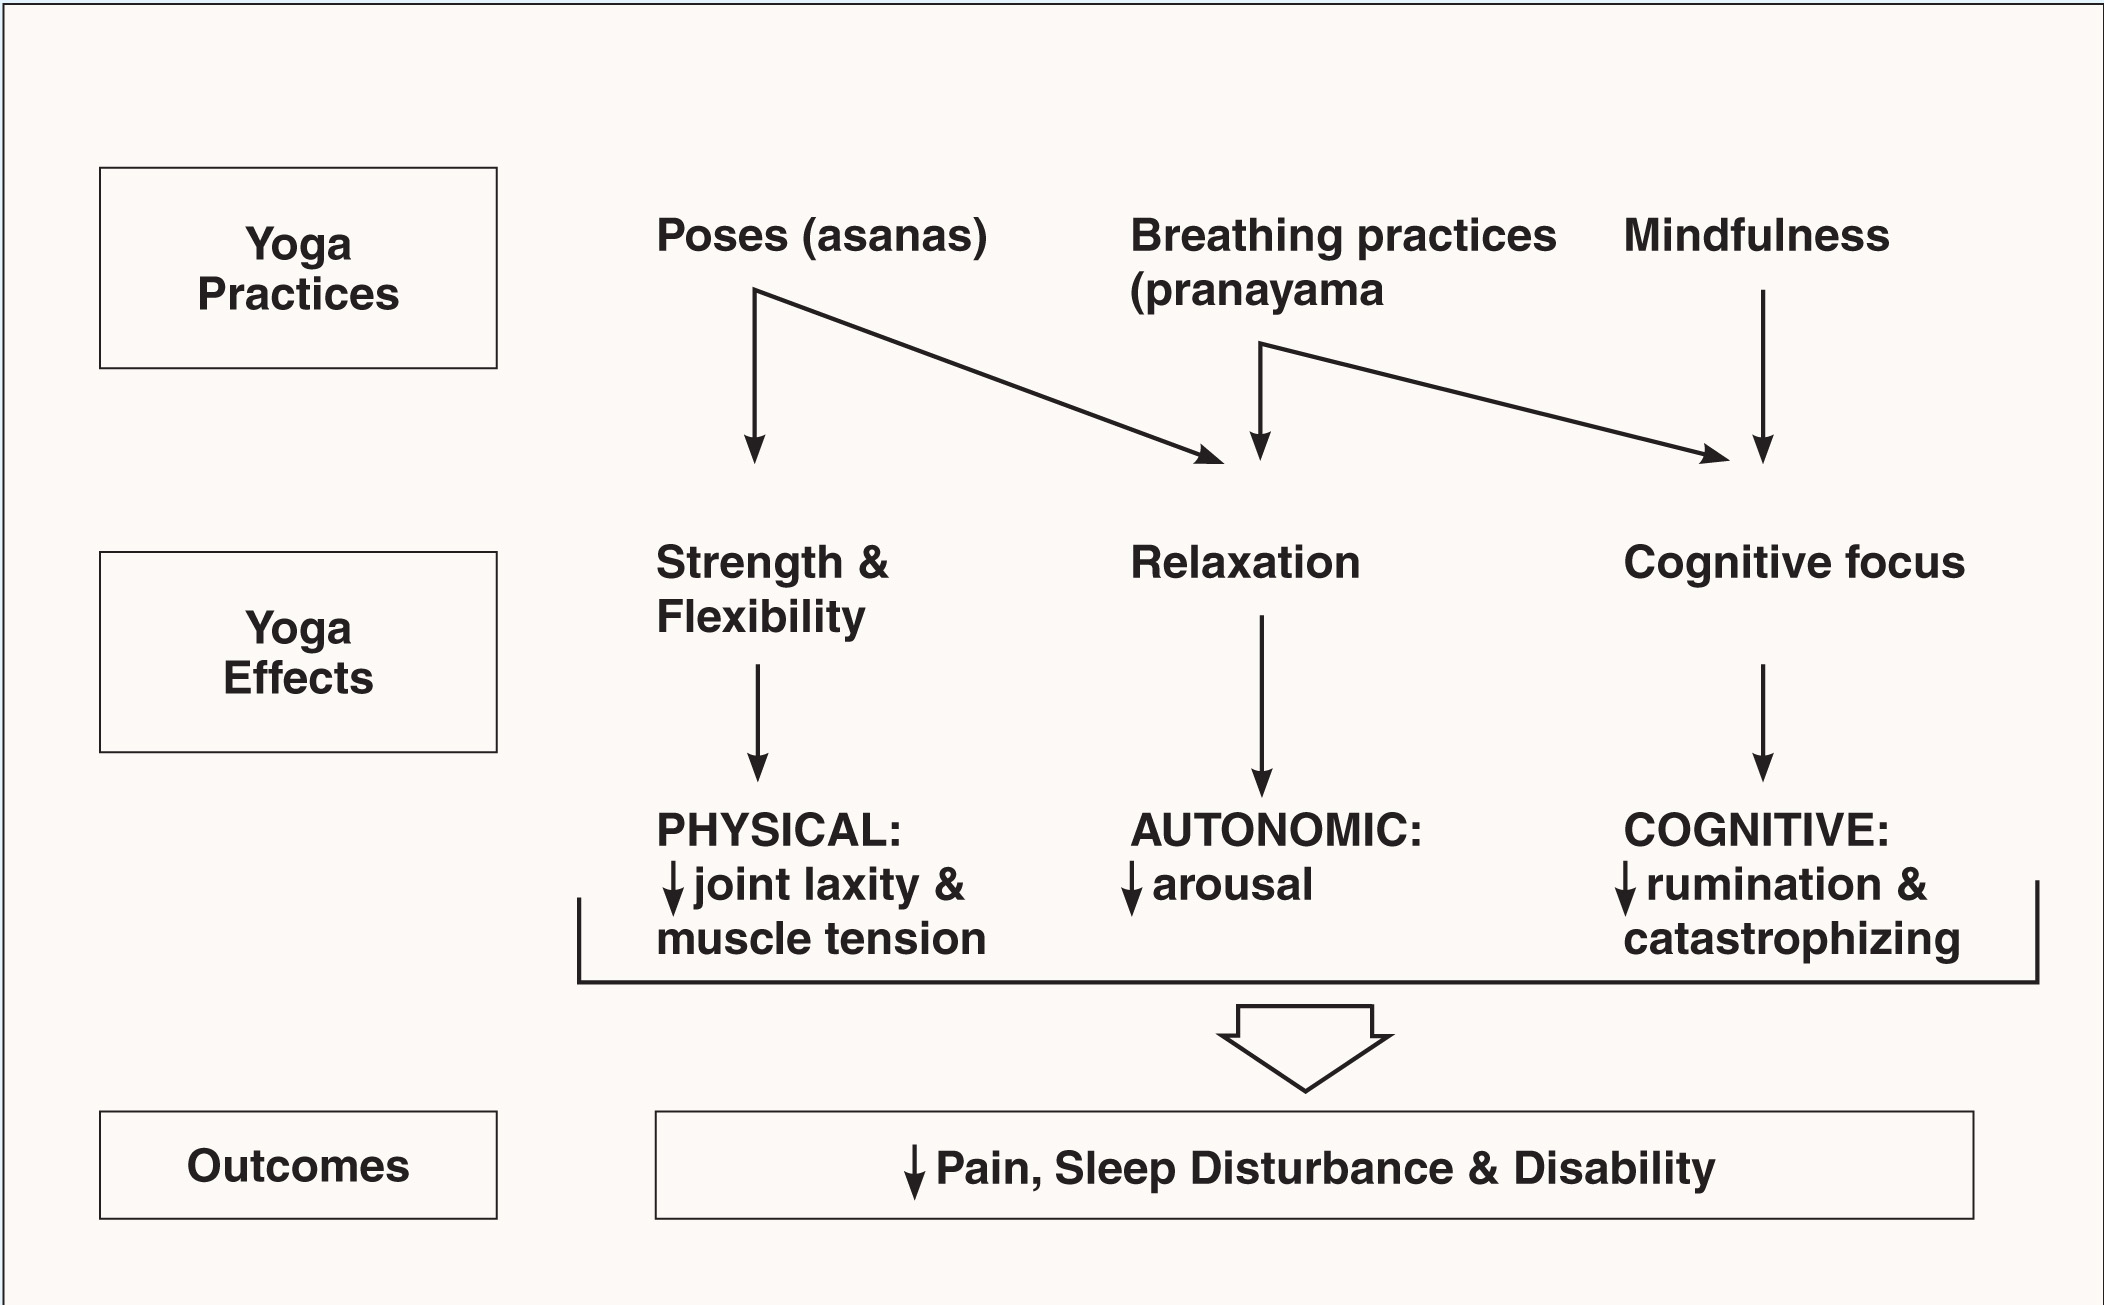 Proposed conceptual model, outlining potential mechanisms and effects of yoga as a multimodal therapy for osteoarthritis (OA). The model is based on current evidence of factors contributing to pain, disability, and sleep disturbance in OA.